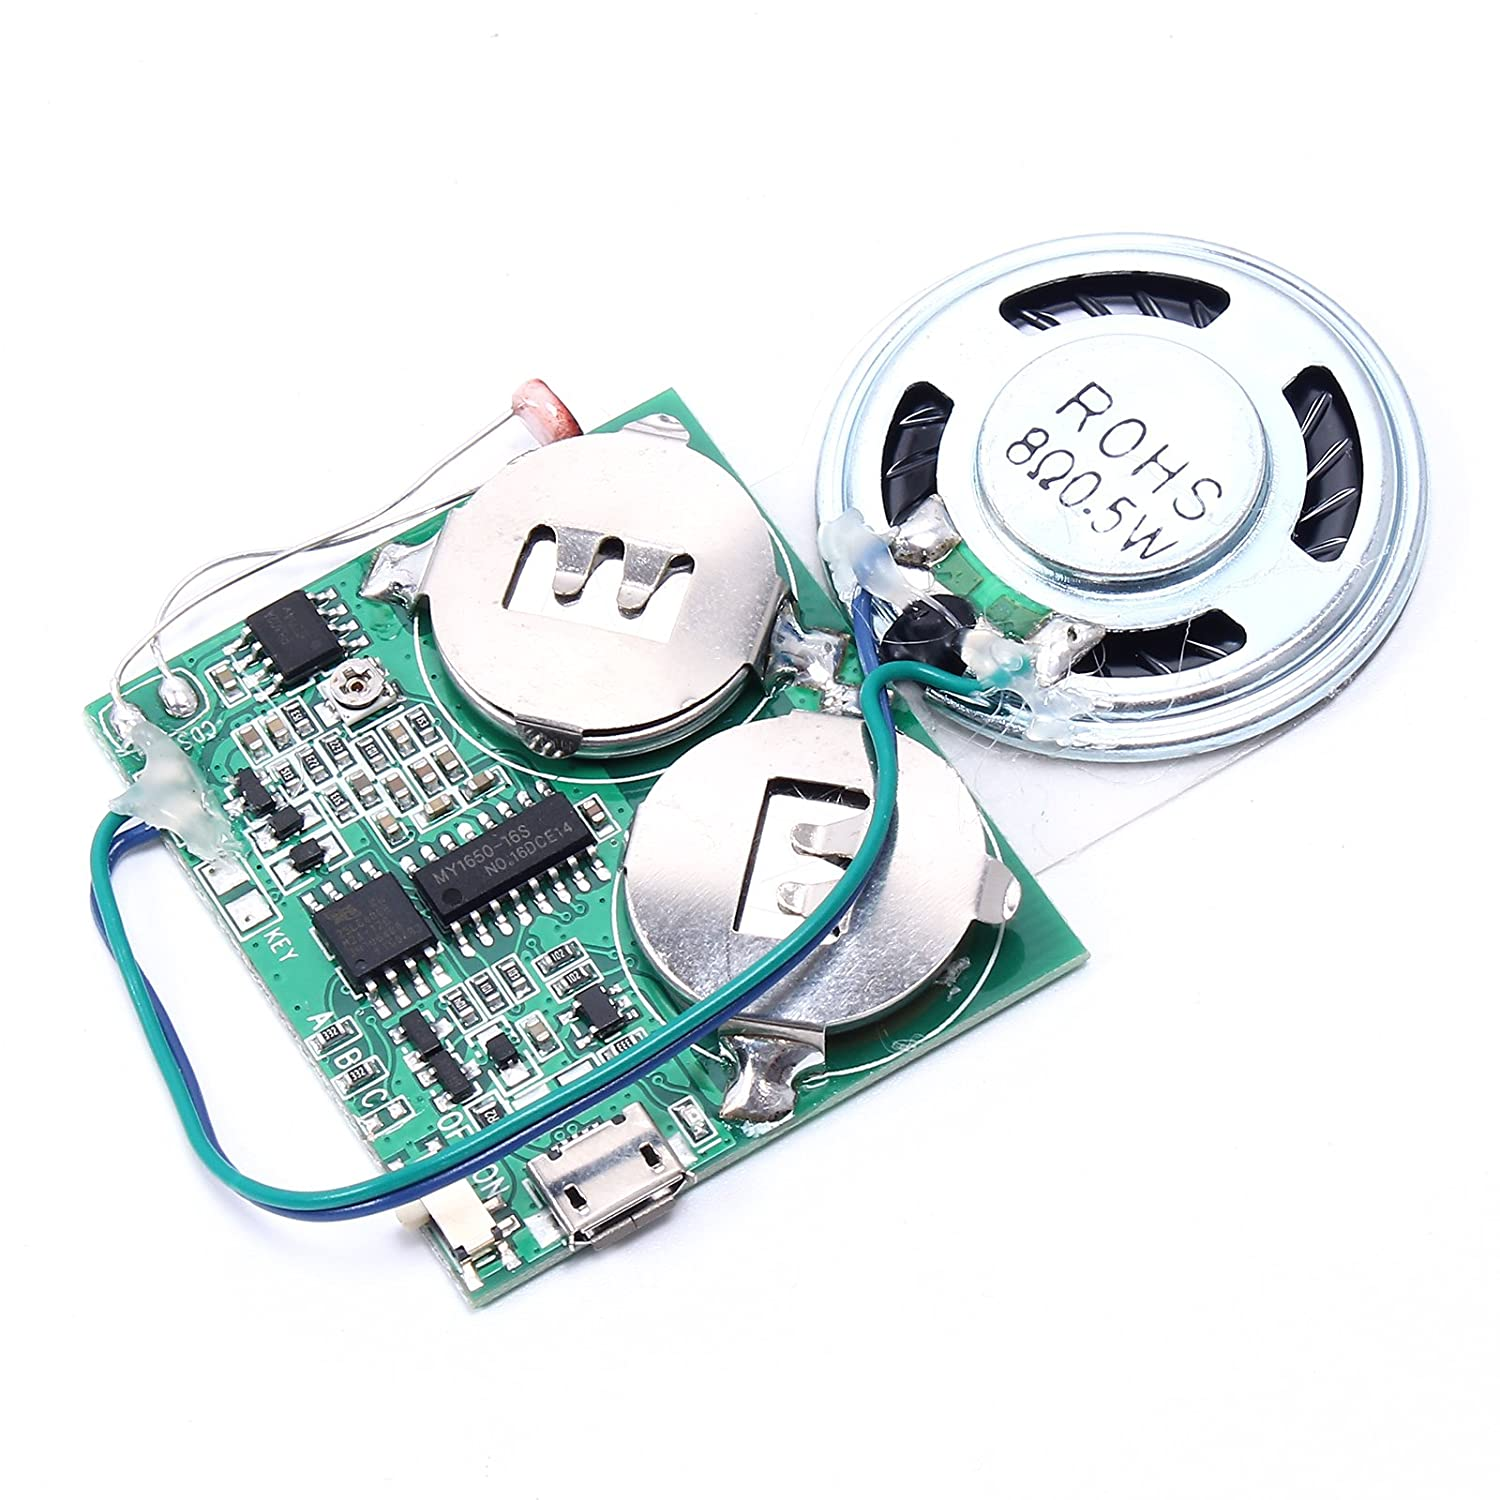 Icstation DIY Programmable Light Control Music Sound Player Module for Musical Gift Box 8Mb Memory